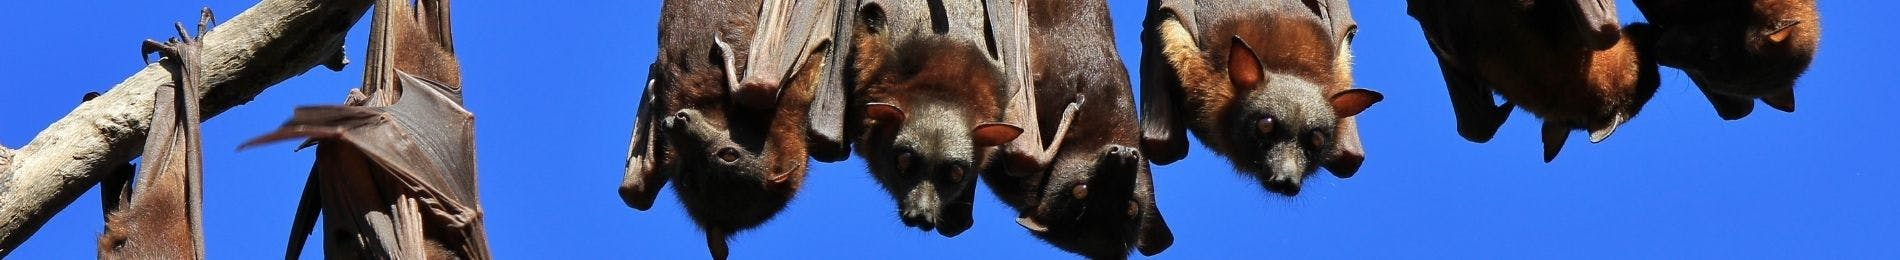 Fruit bats or flying foxes